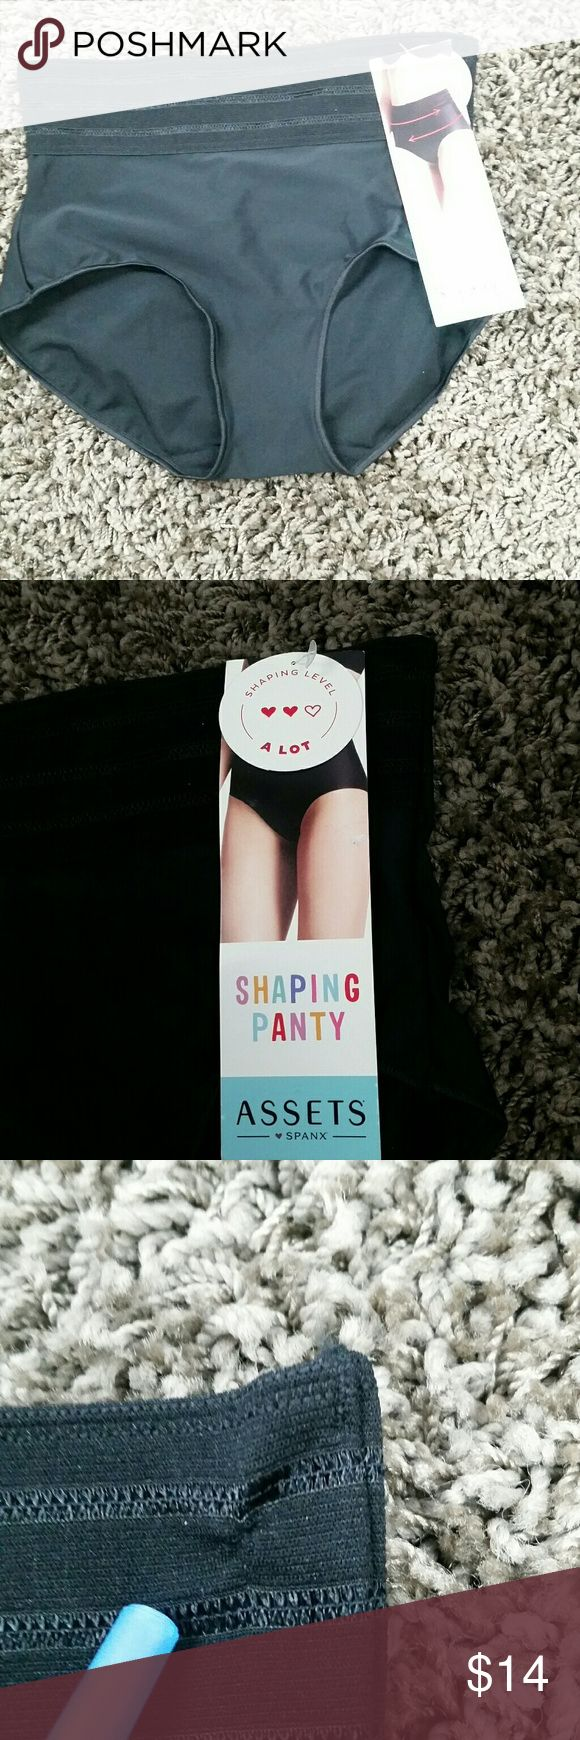 Love Your Assets Spanx Shaping Panty Tummy Control Love Your Assets Spanx Shaping Panty Tummy Control Foundation Garment Size Small  Excellent condition, one small snag (pictured) Please see pictures for more details.  All items are stored in a pet friendly, smoke free home but we source from many different places and cannot guarantee that items were in a smoke/allergen free environment before they came to us. Thank you for looking and shopping with us! SPANX Intimates & Sleepwear Shapewear